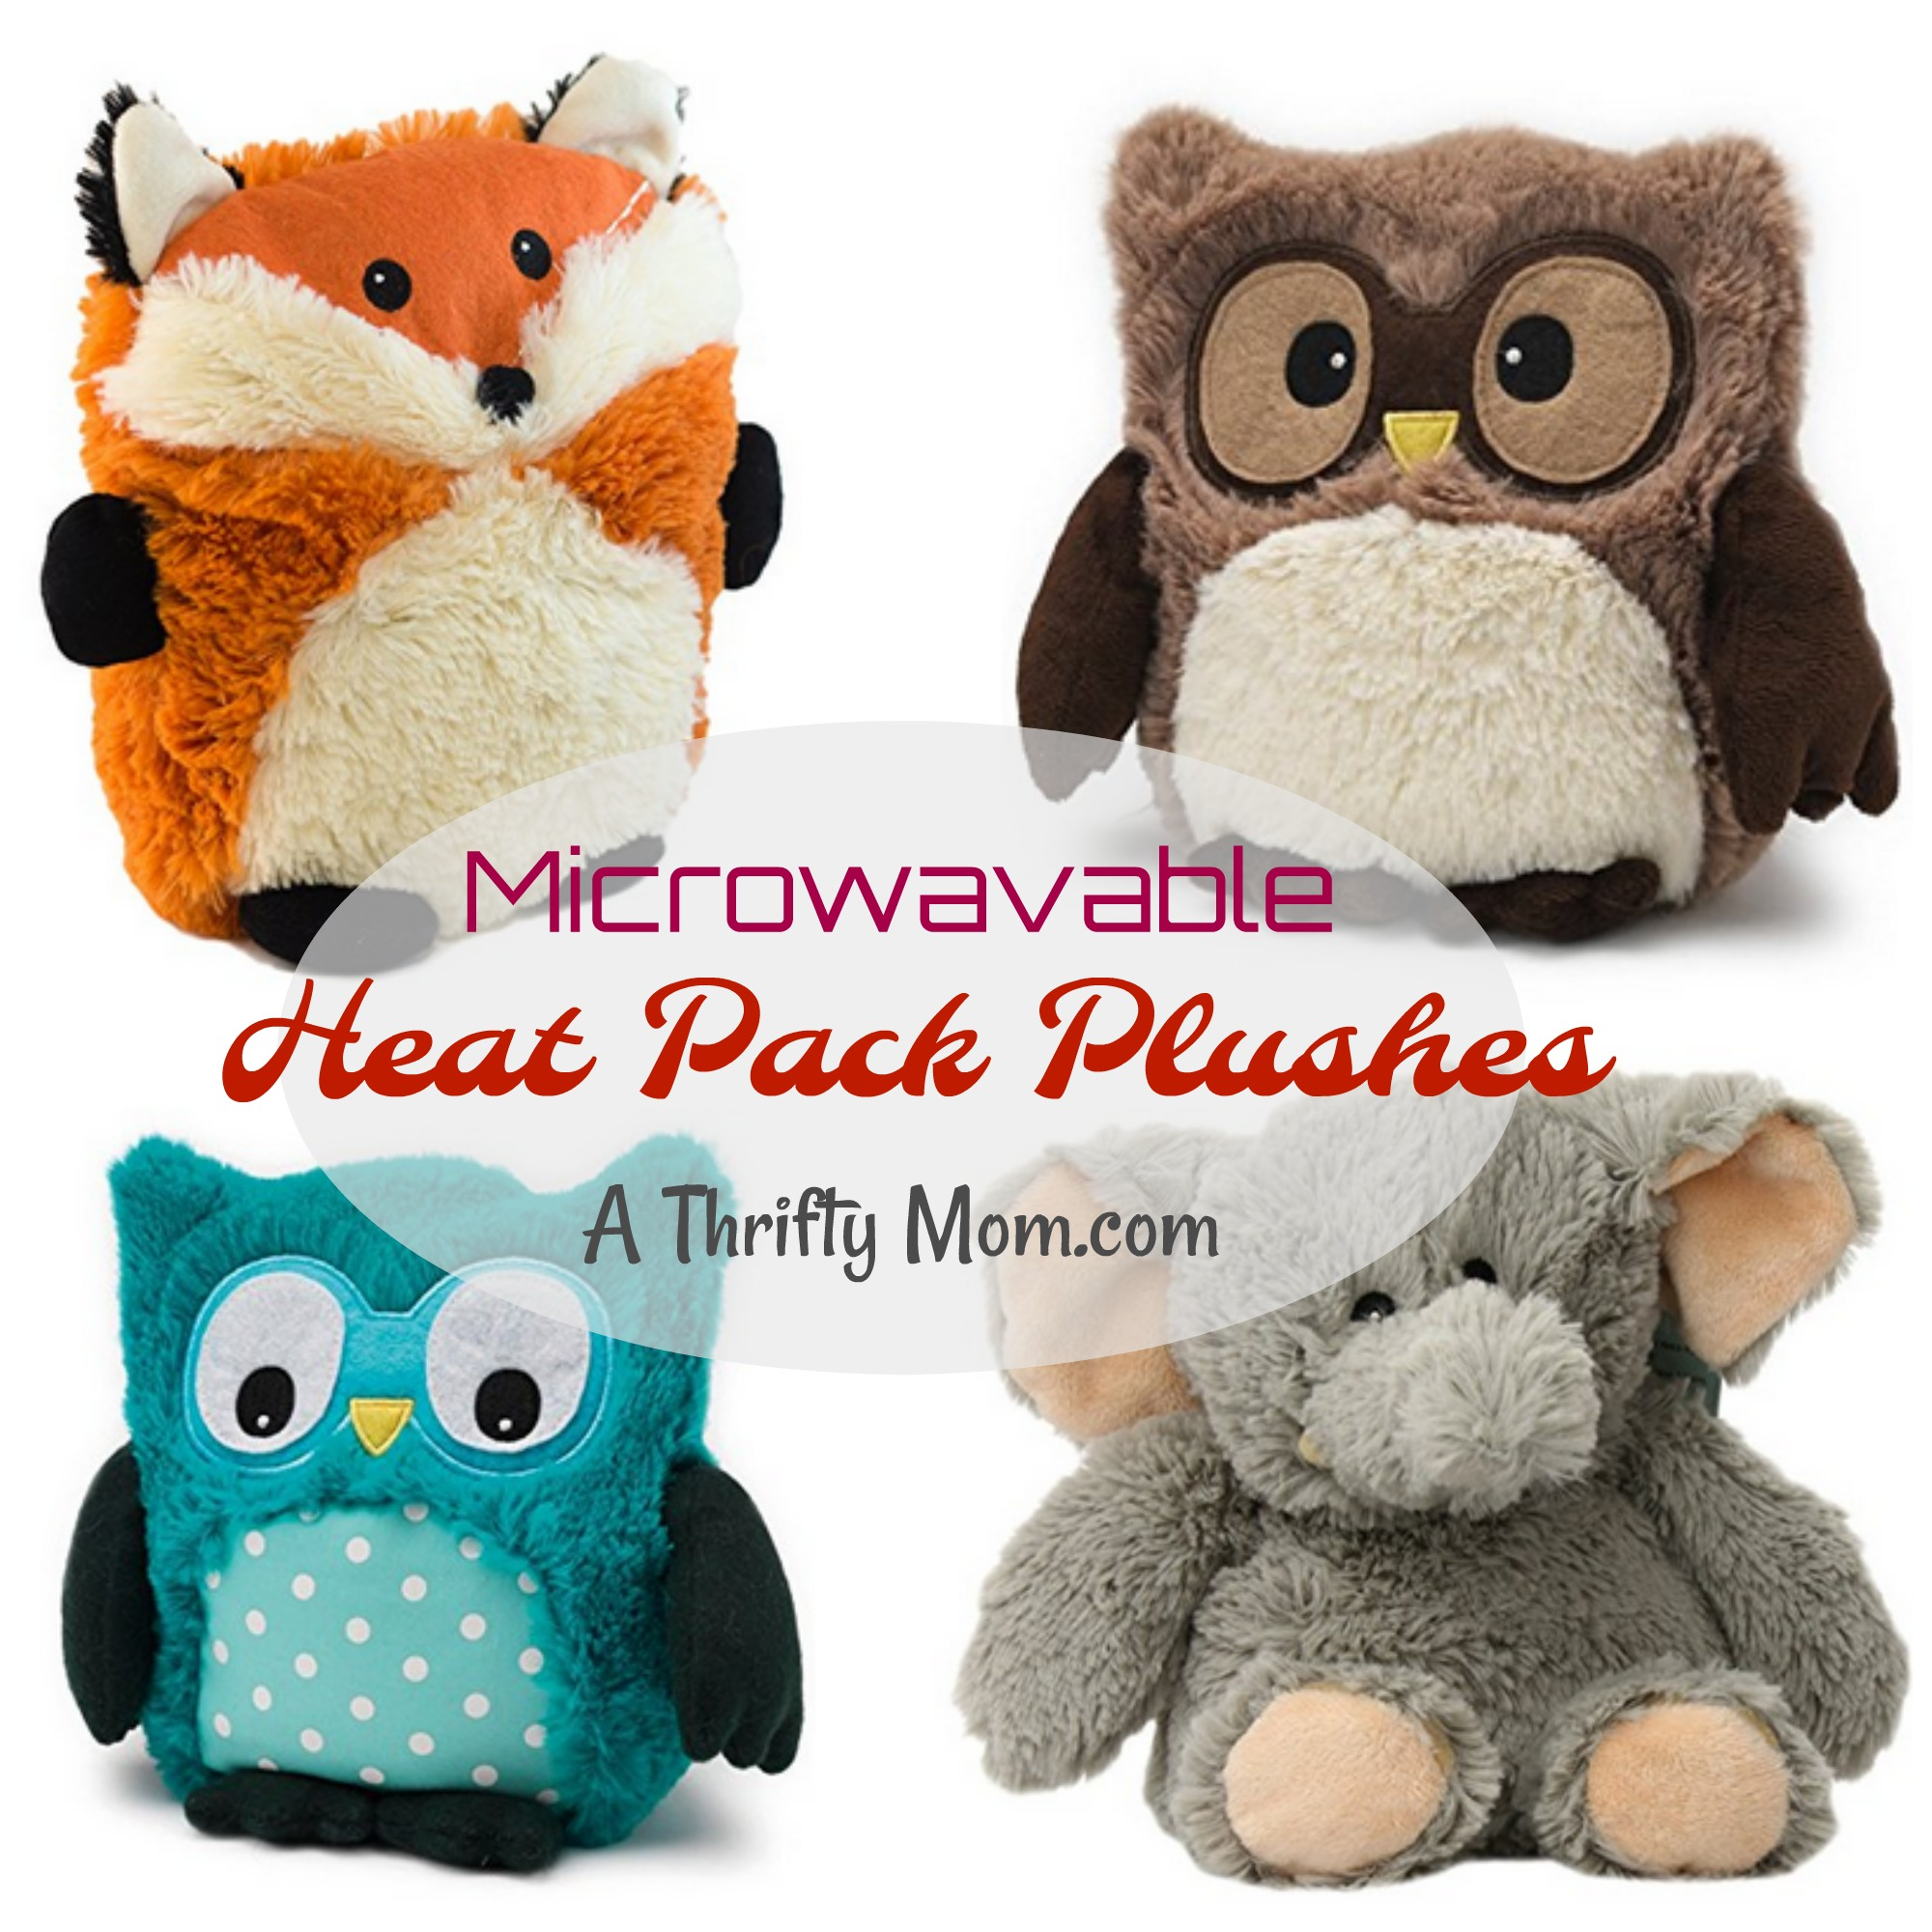 Heat Pack Plushes